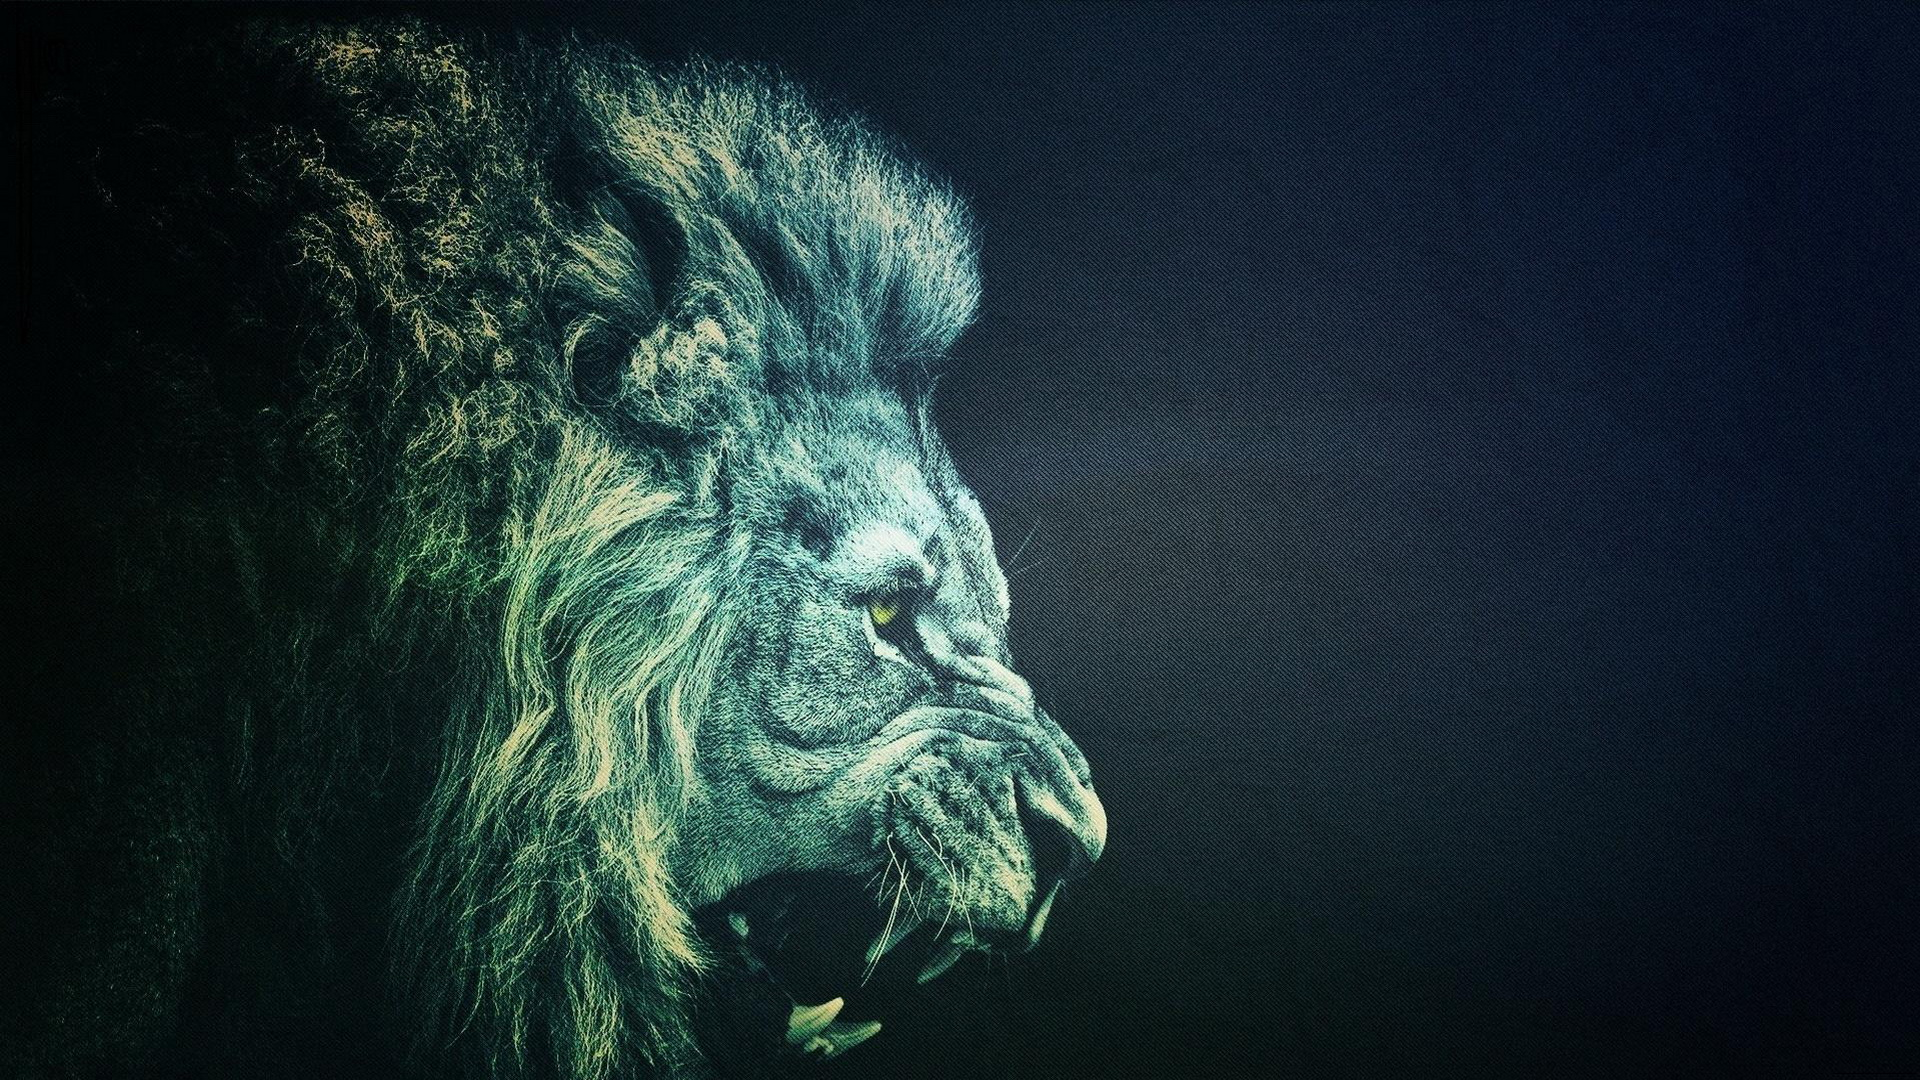 Lion Full HD Best Wallpaper and Background